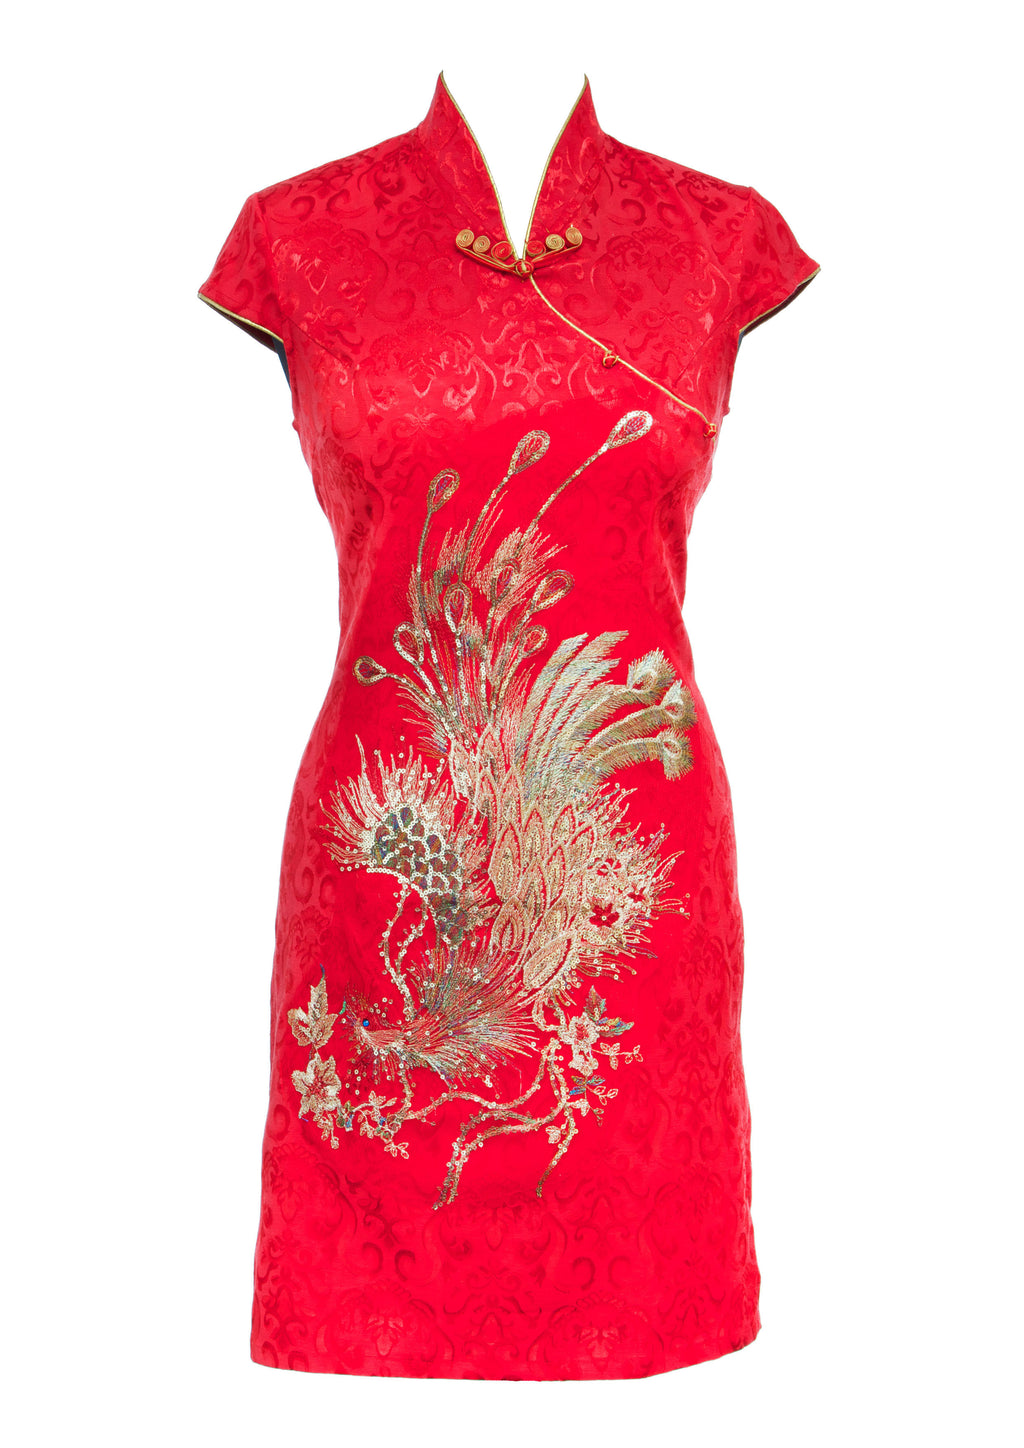 The Cheongsam or Qipao, is a feminine body-hugging dress with distinctive Chinese features of mandarin collar, side splits and hand stitched flower and knot frog fastenings. Manufactured in a striking red stretch cotton jacquard with a sequinned, gold embroidered peacock applique and gold piping. Invisible back zip